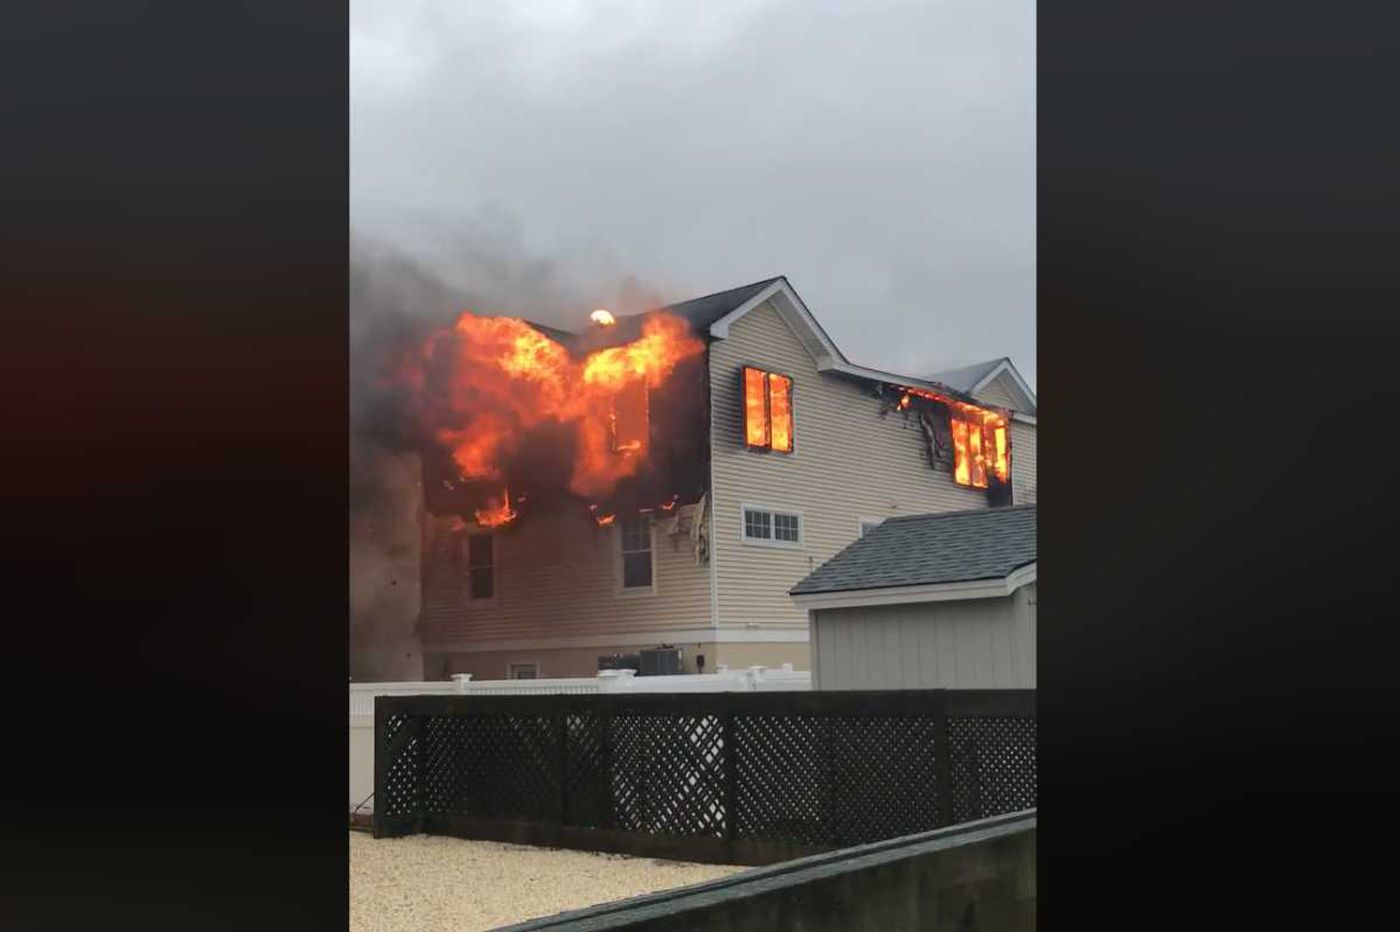 Fire breaks out at LBI house struck by lightning amid nor'easter